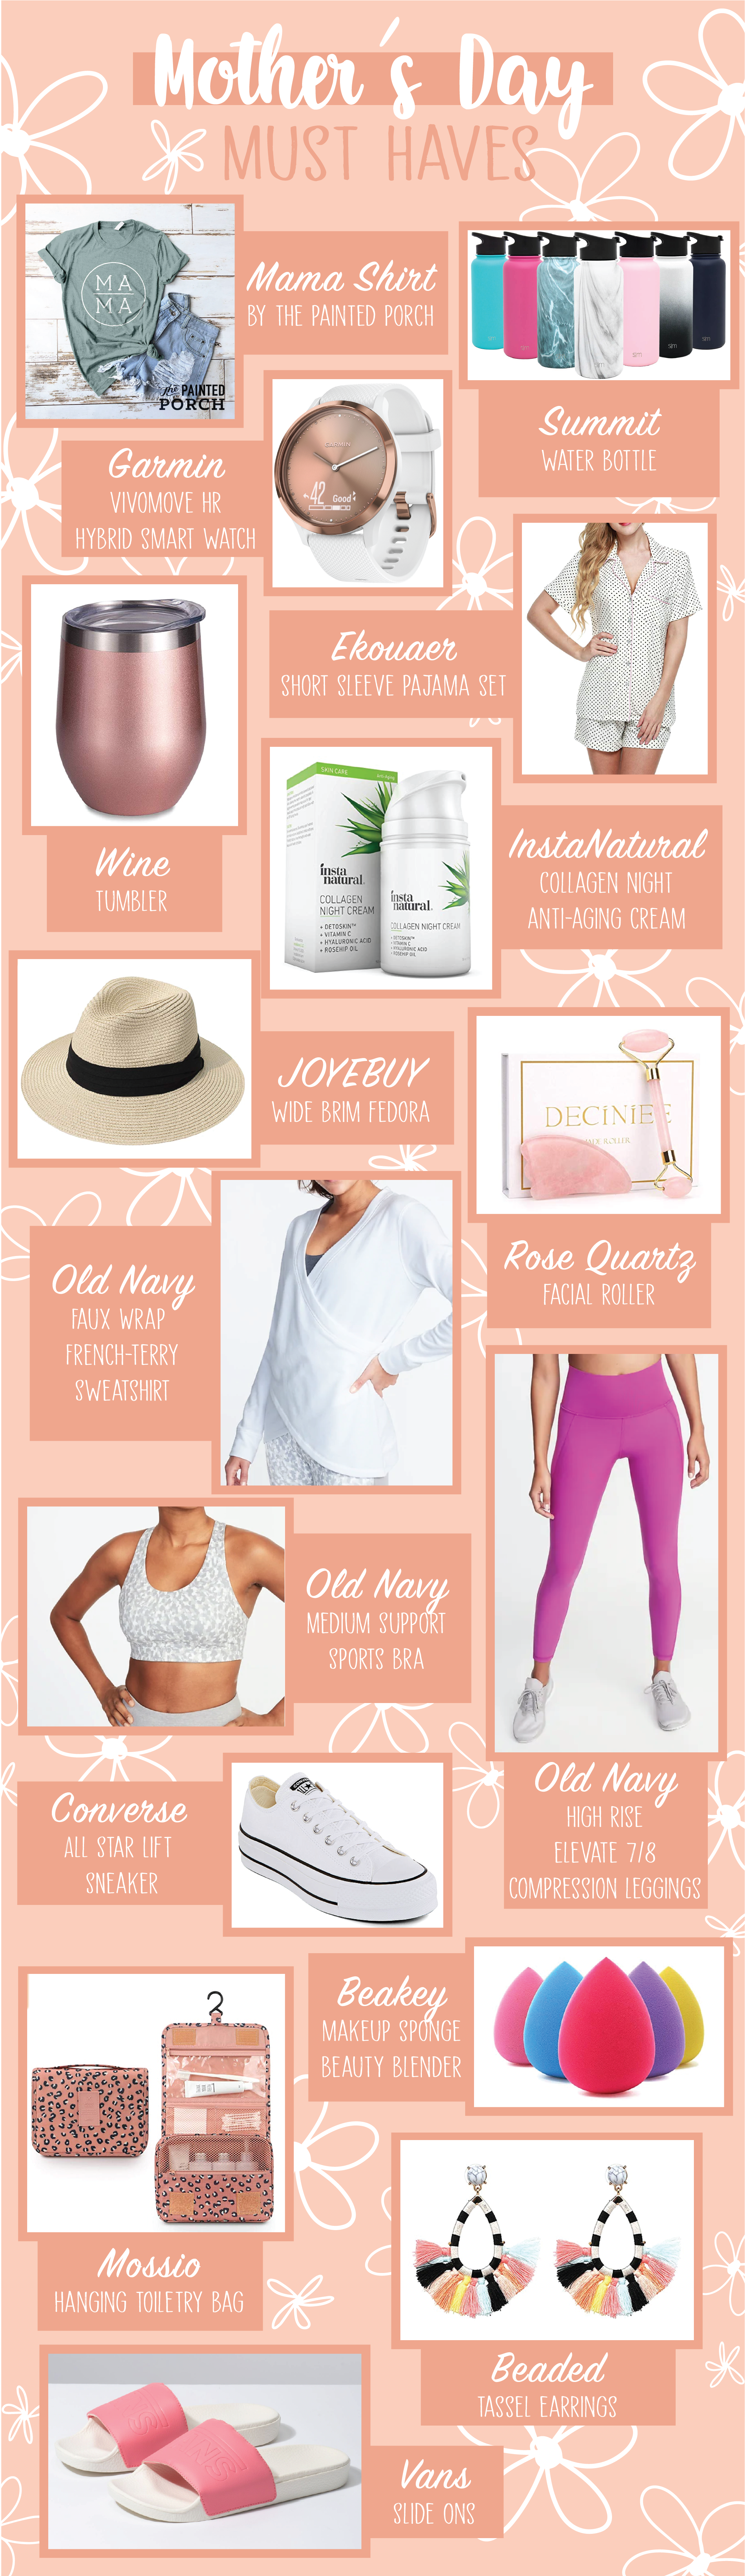 Mother's Day Gift Guide-01.png